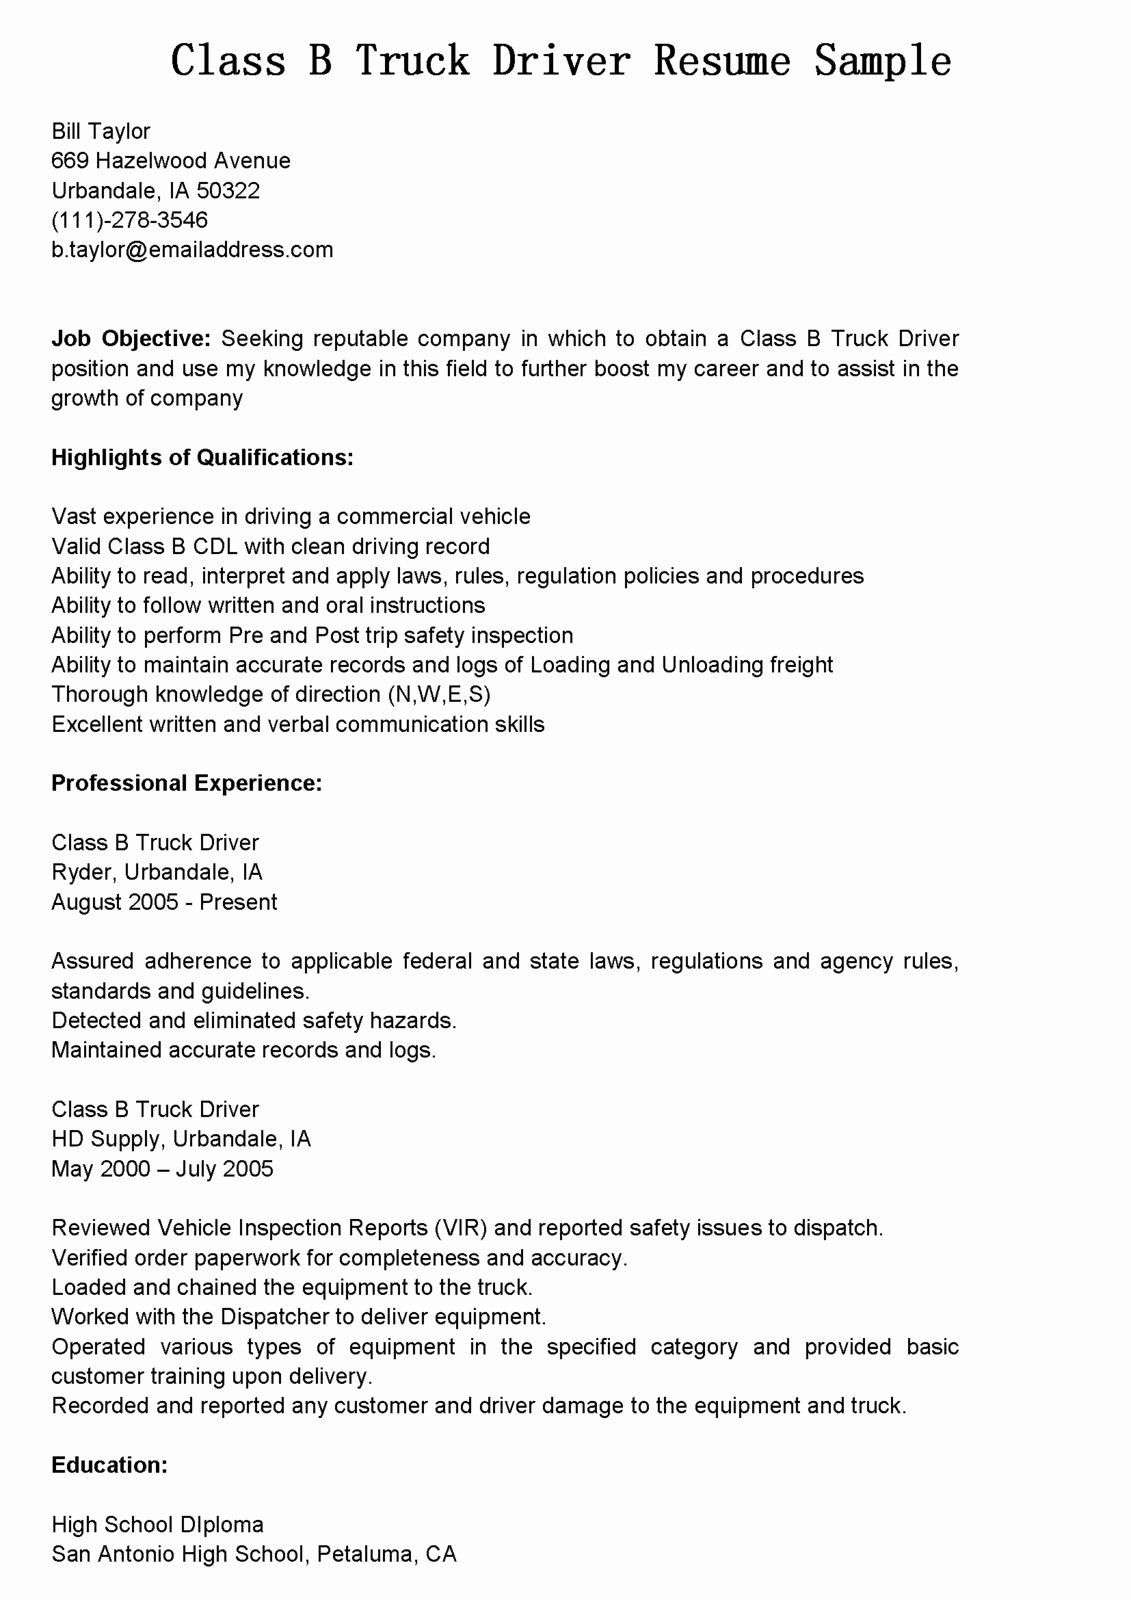 Truck Dispatcher Job Description Resume Best Of Pin By Calendar